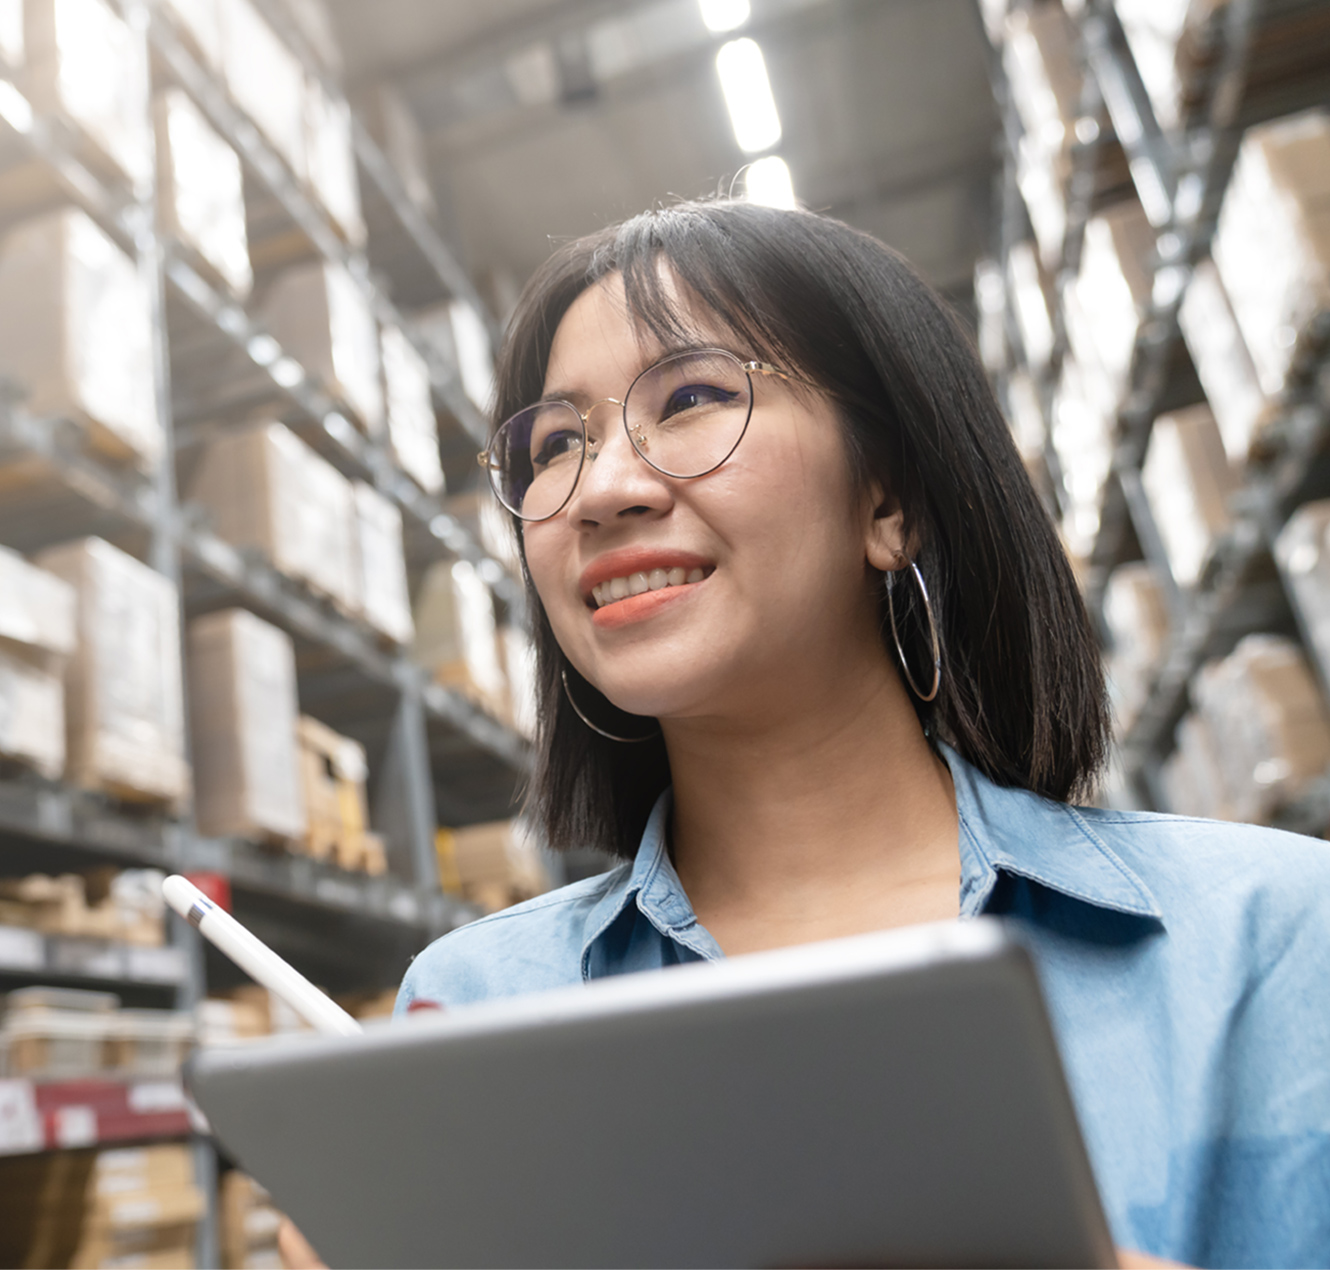 Digitization of supply chain management can assure supplier performance management